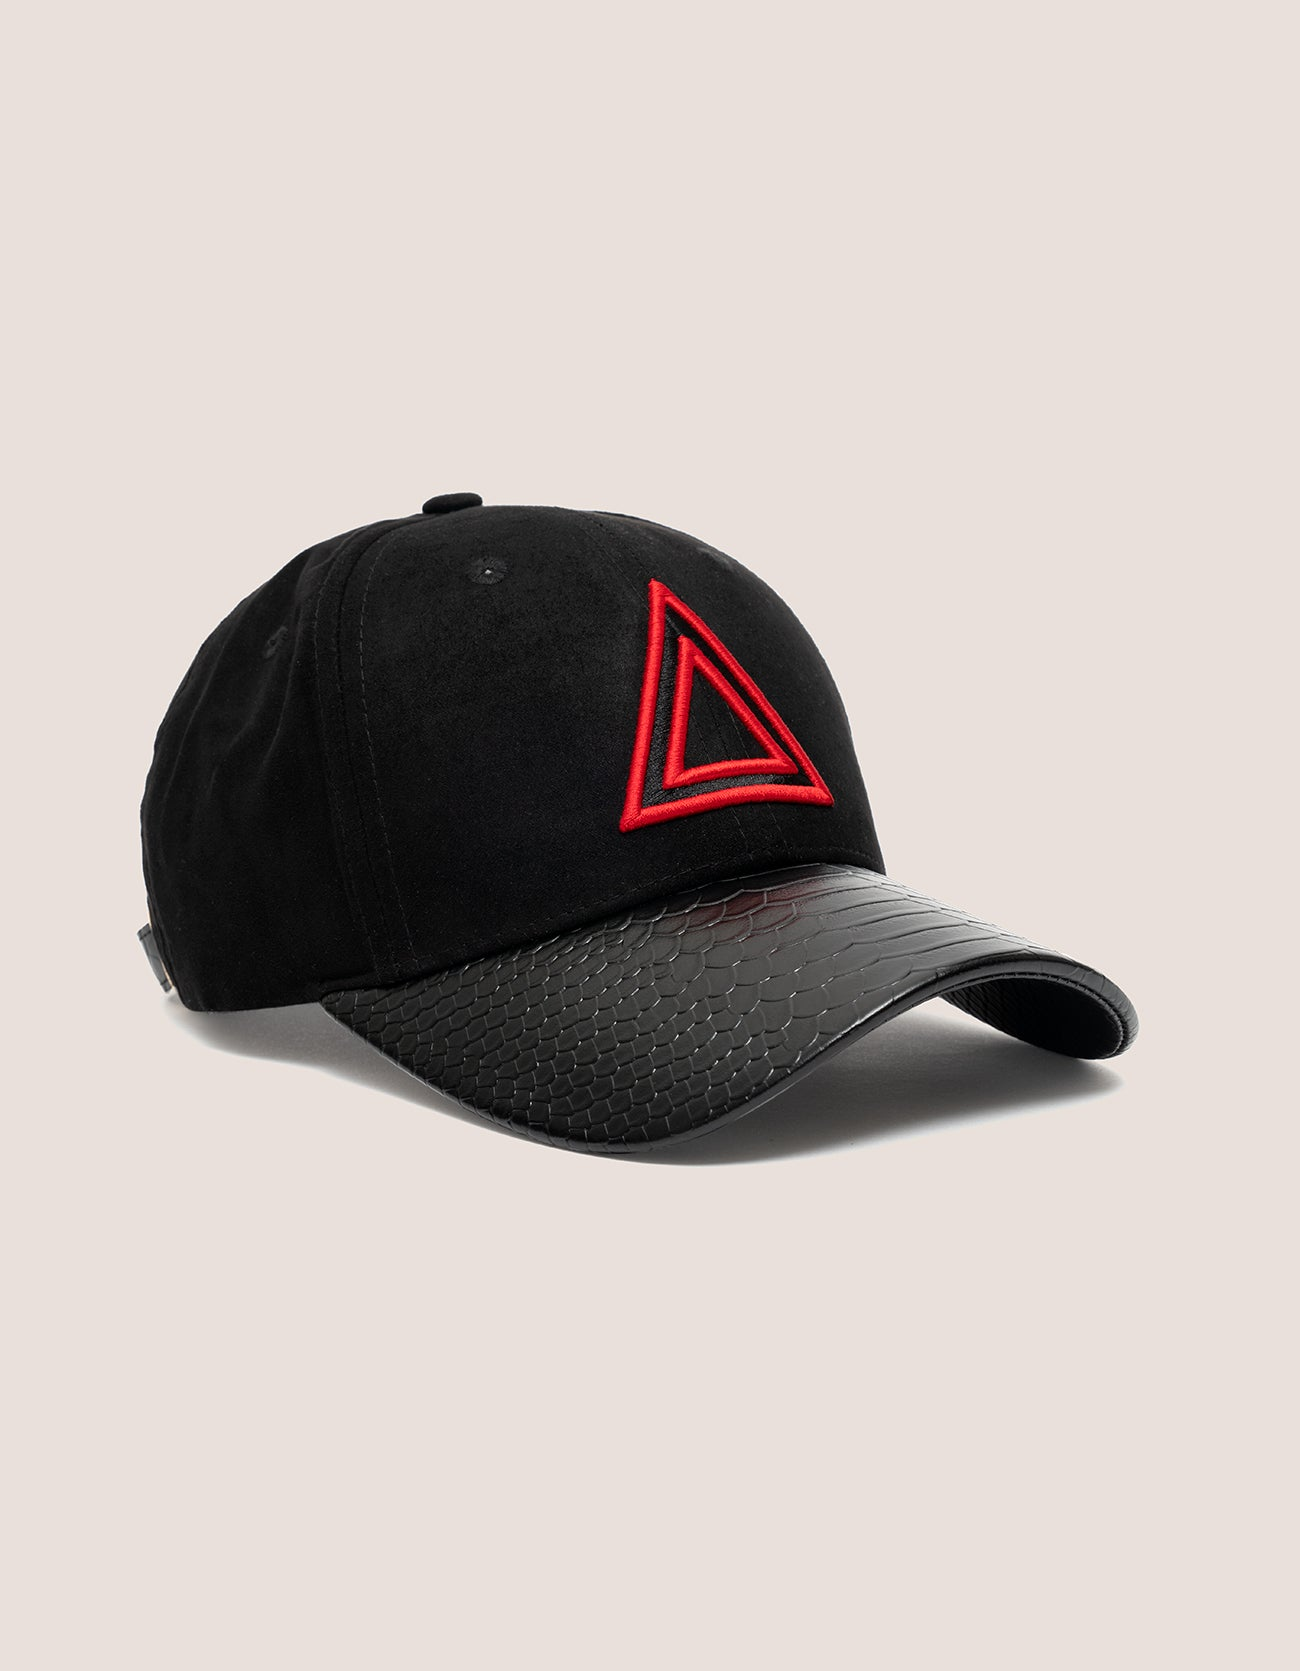 TRI x KILLA  Suede BLACK Baseball hat